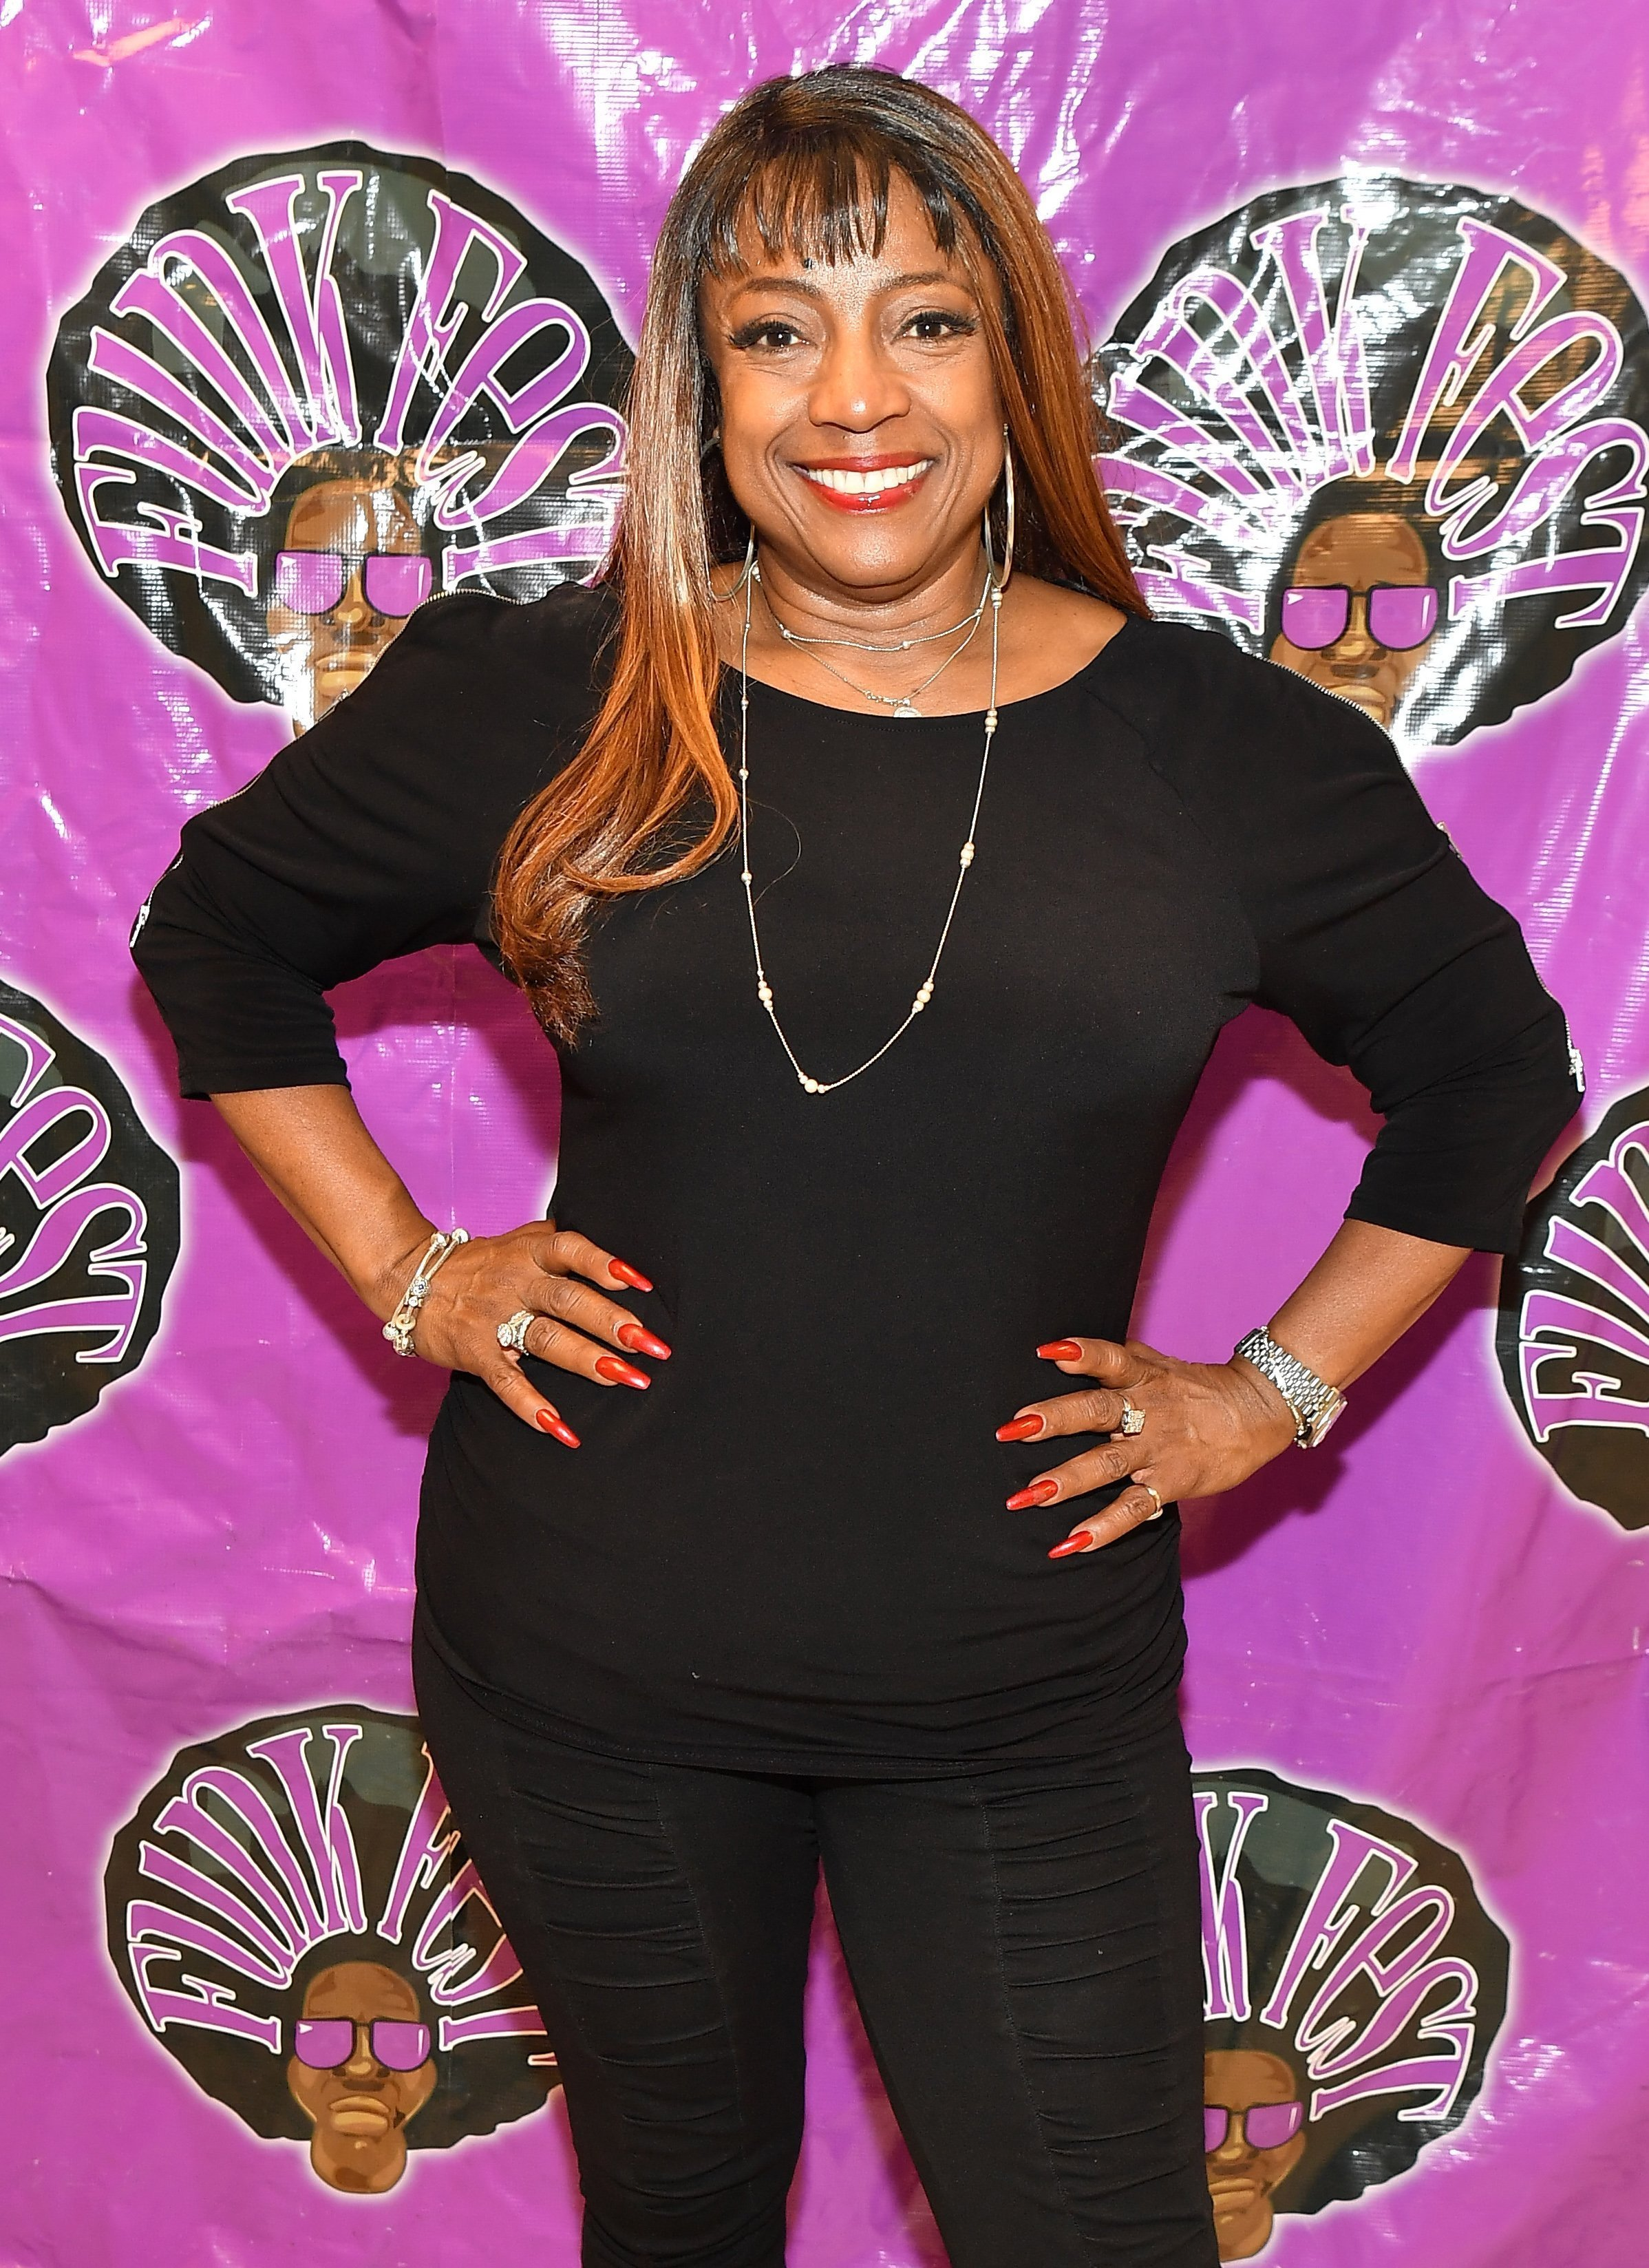 Bern Nadette Stanis attends the 2018 Funk Fest Tour at Wolf Creek Amphitheater on May 19, 2018 | Photo: GettyImages